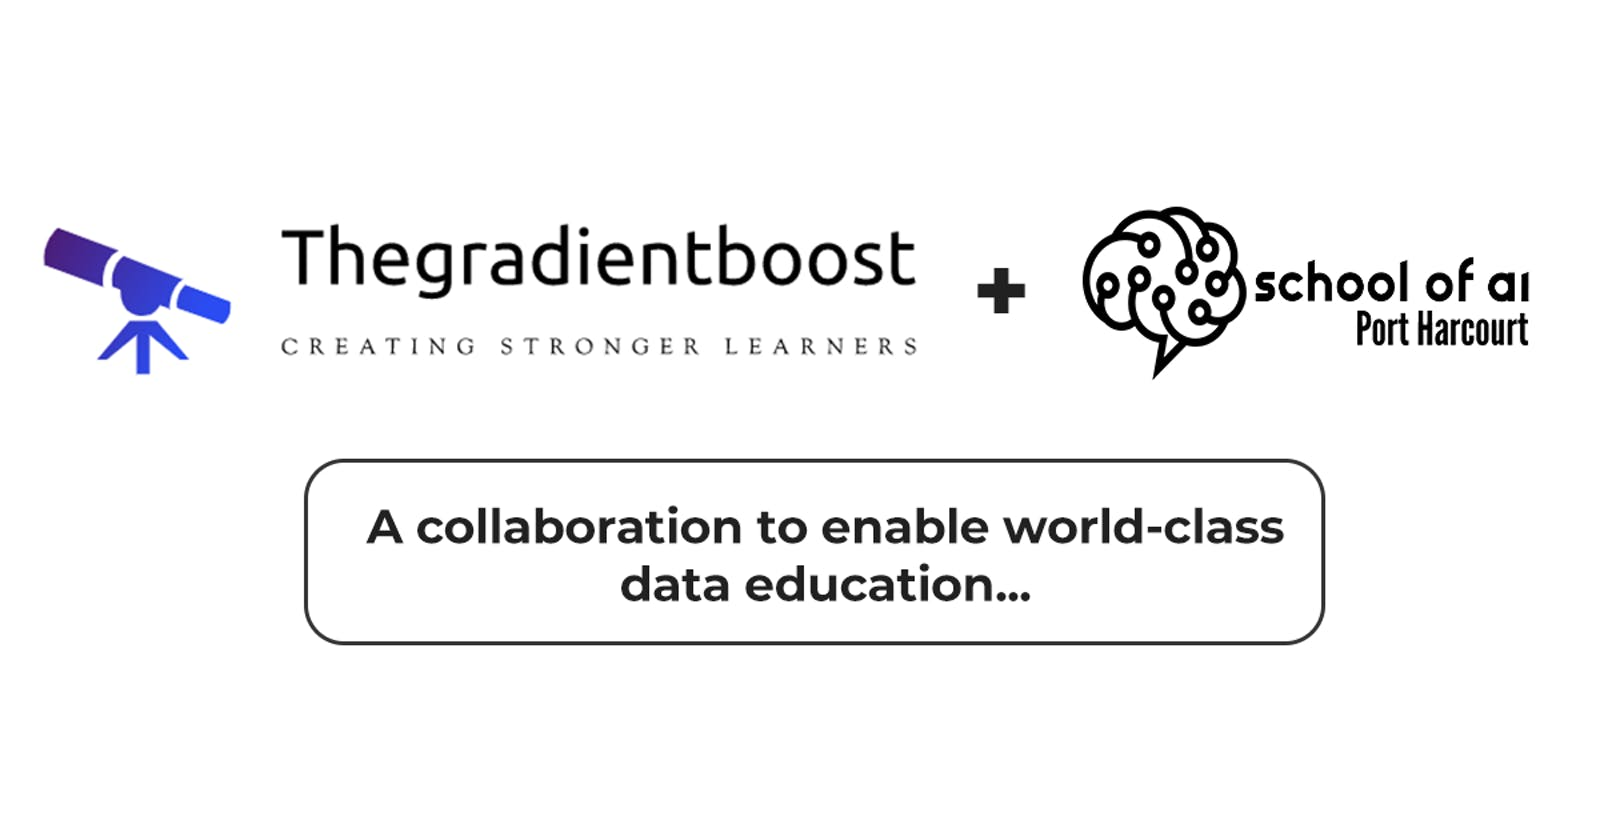 Port Harcourt School of AI Partners with The Gradient Boost to Enable World-Class Data Education.